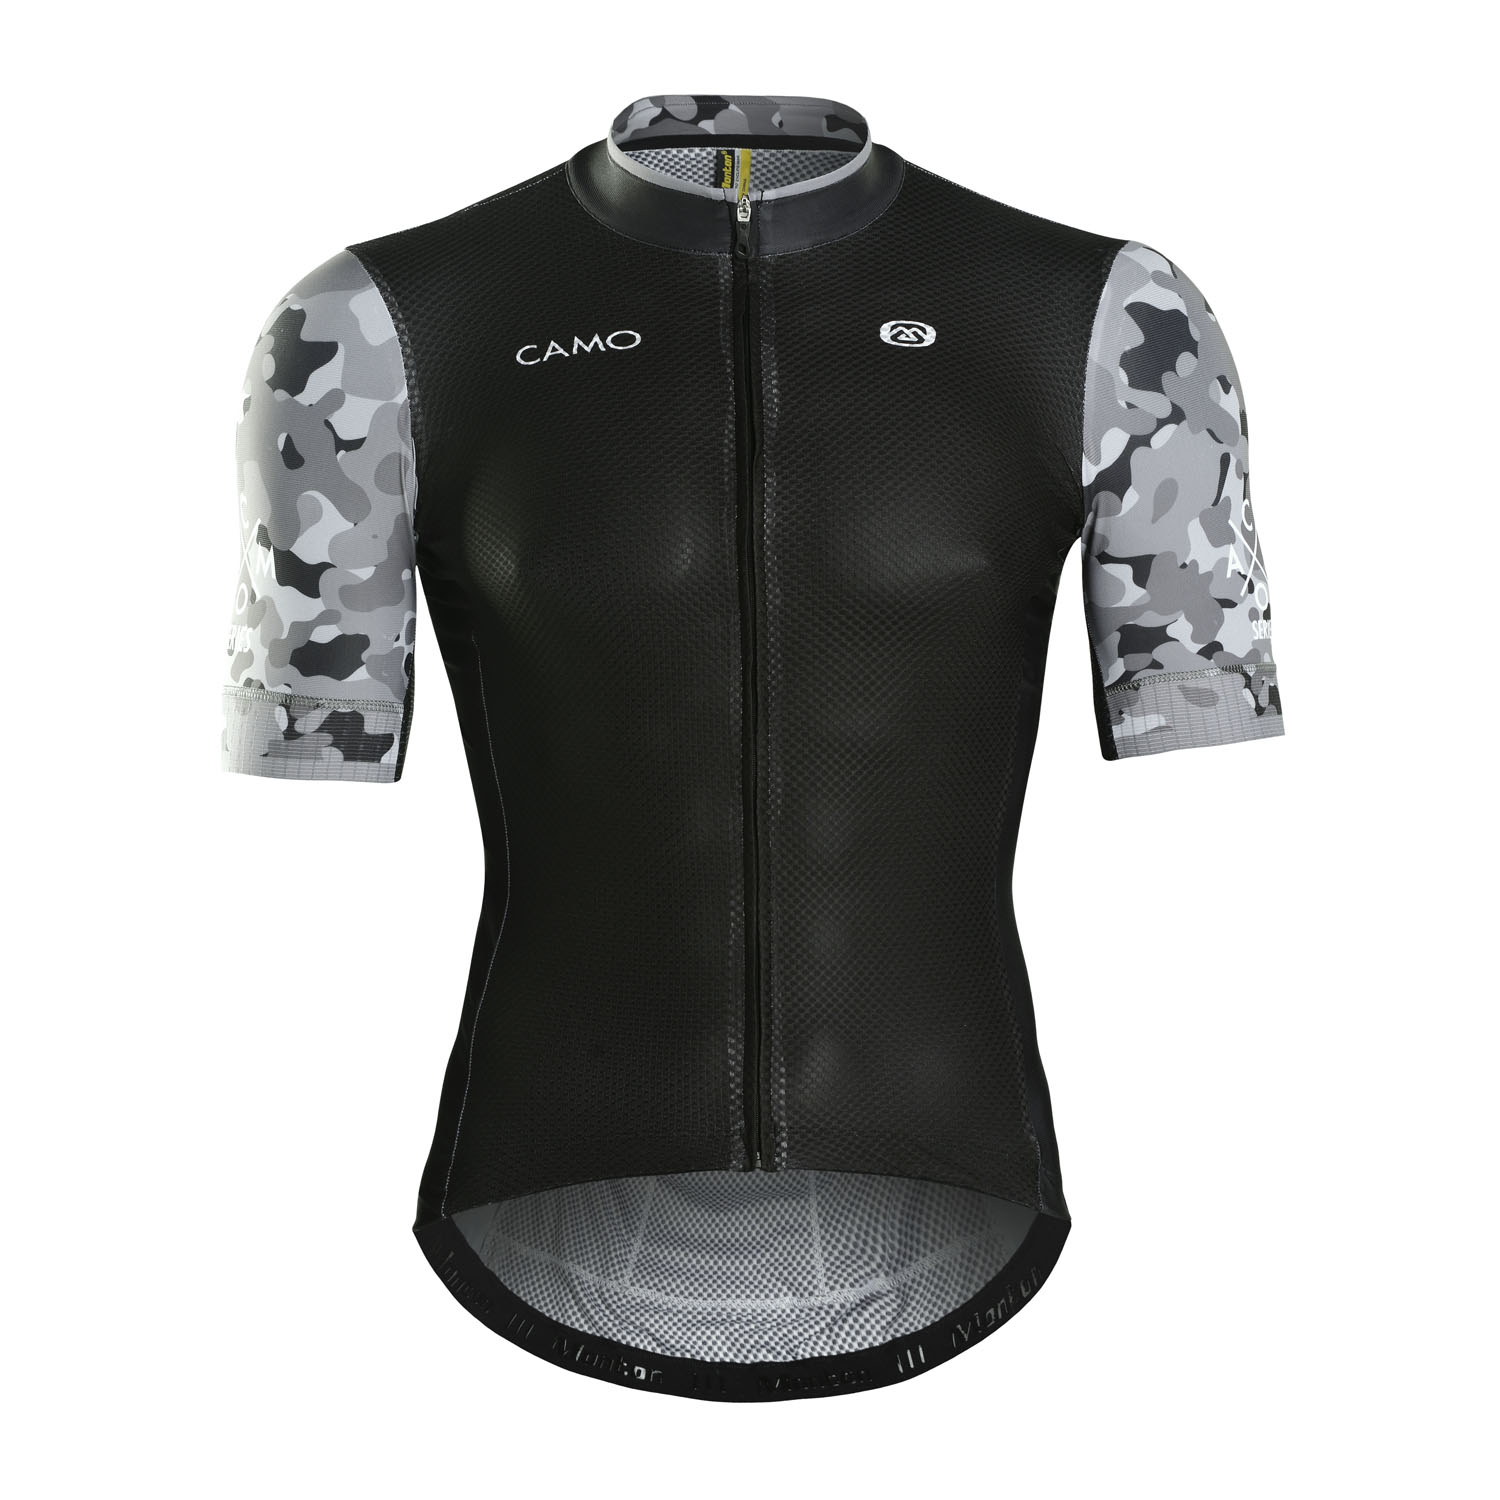 Monton 2016 Mens Short Sleeve Cycling Jersey PRO CAMO Disguiser Bicycle Top 42c6040a9